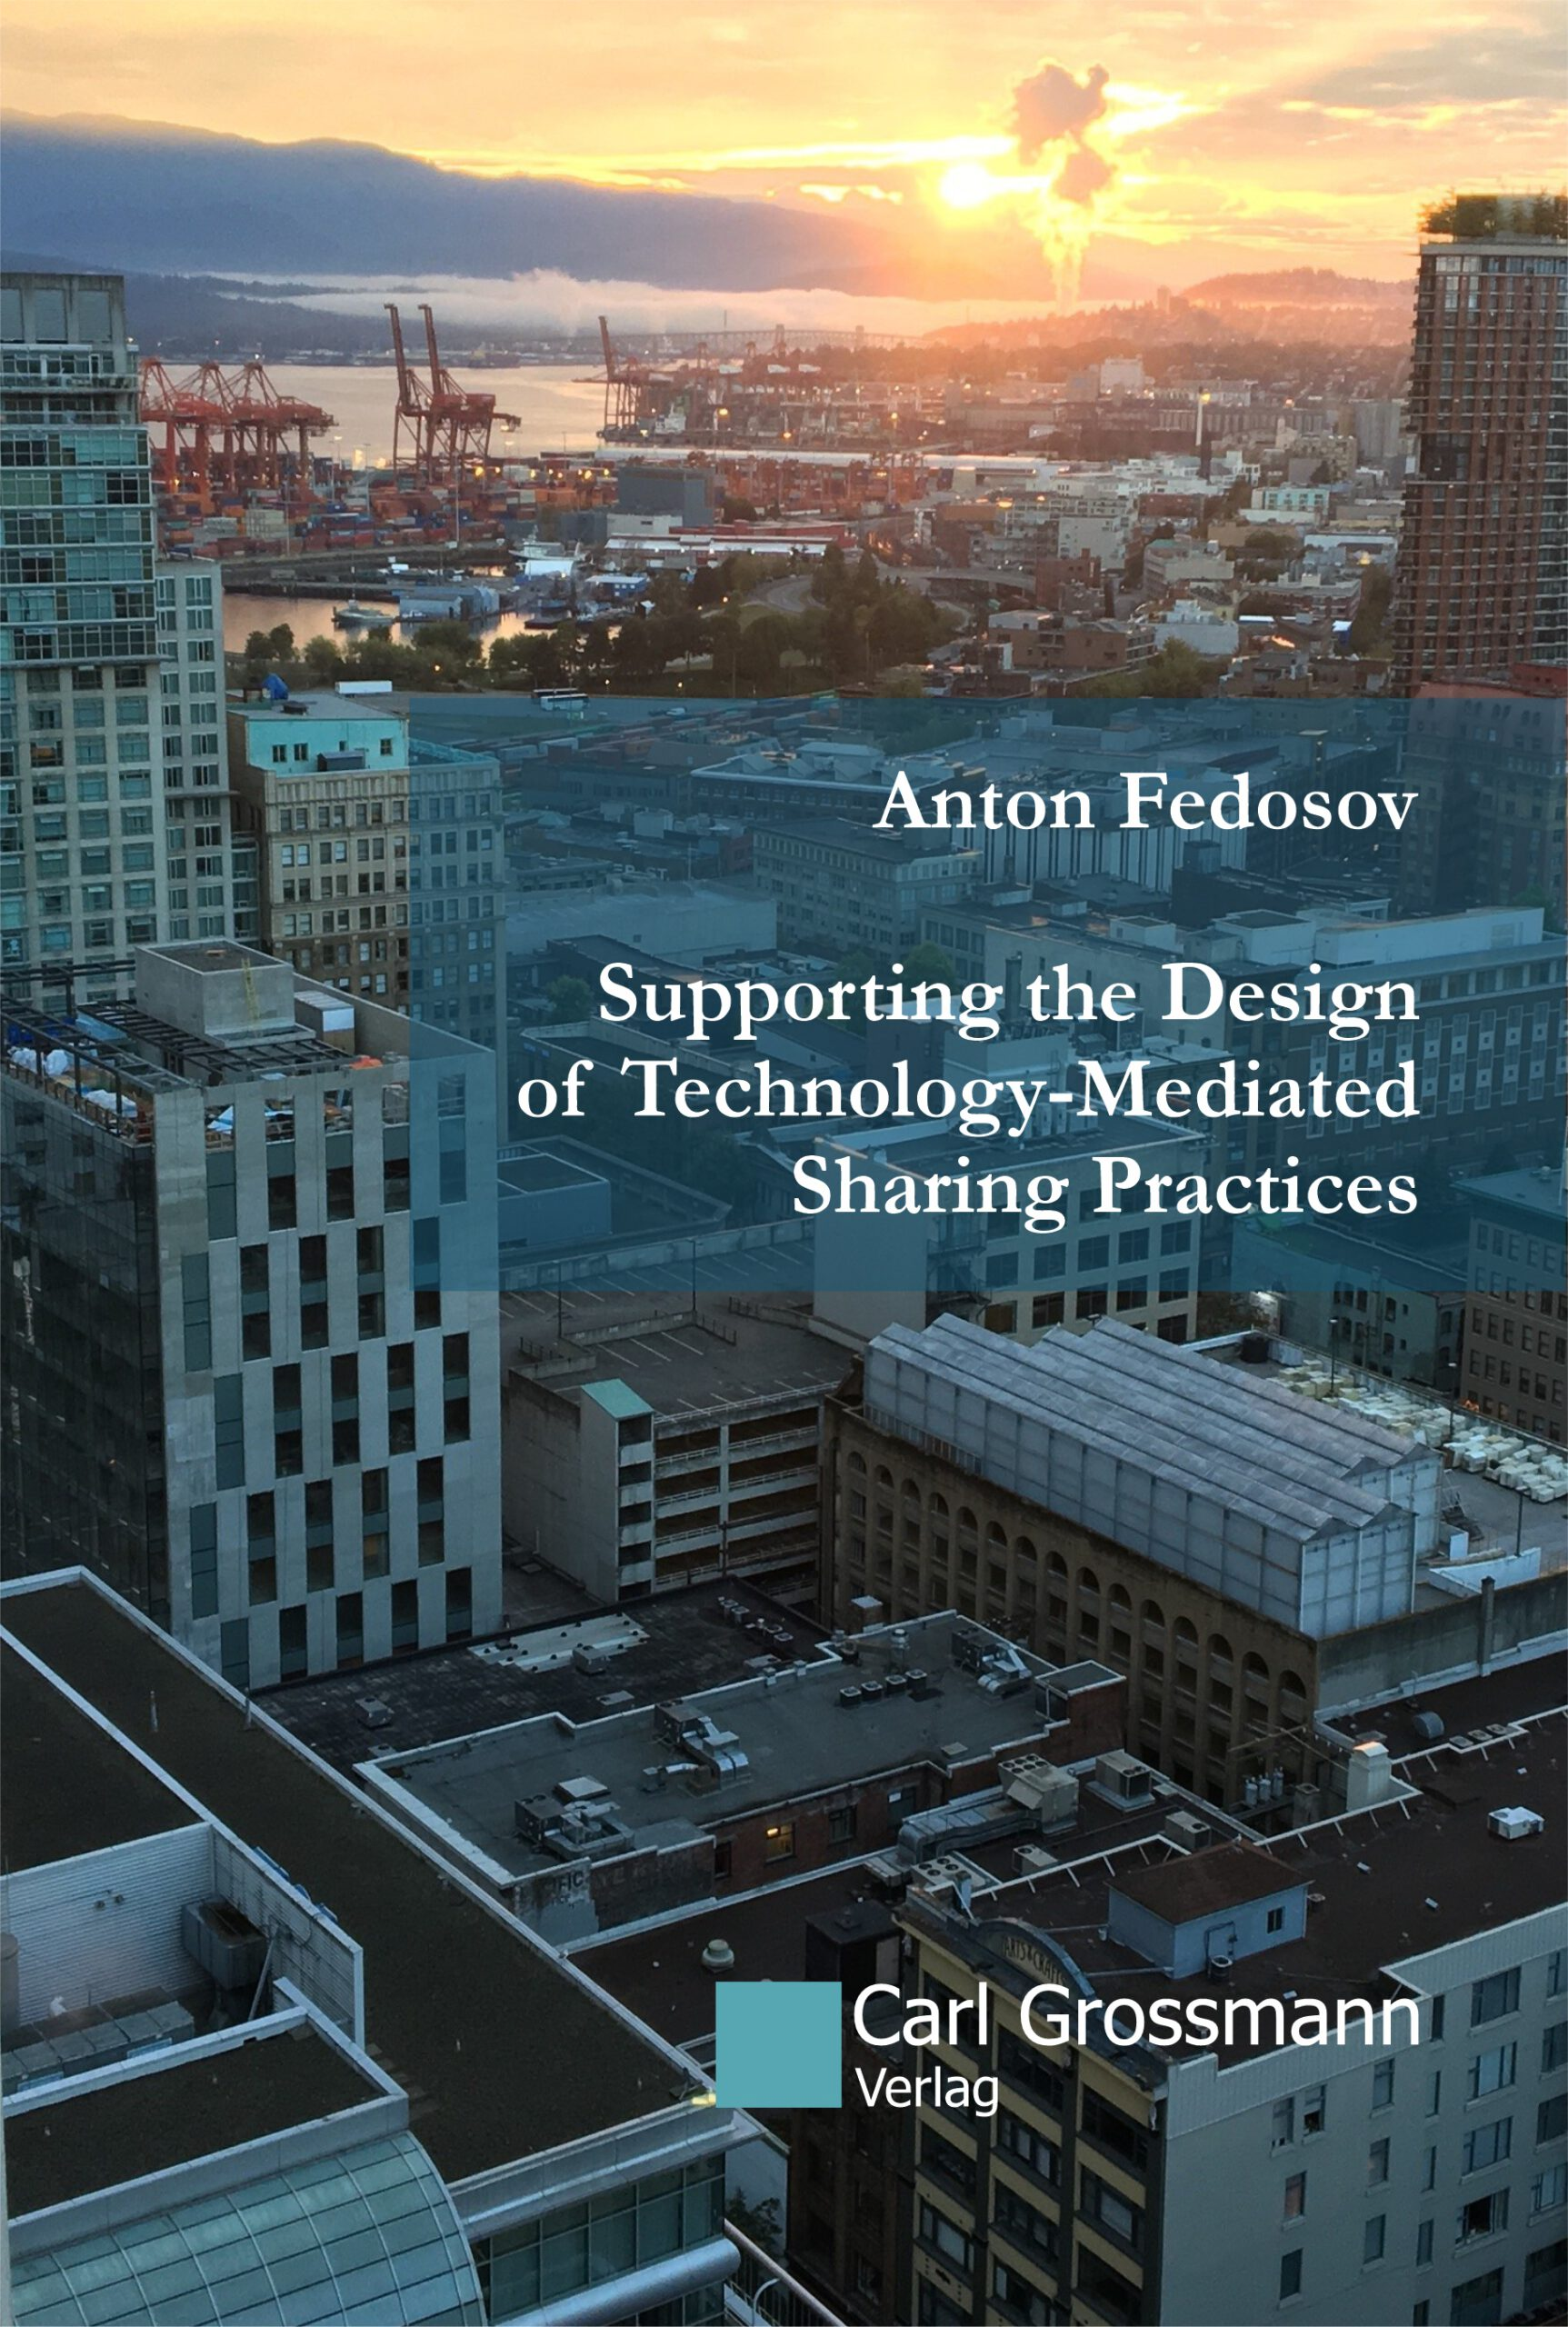 Anton Fedosov: Supporting the Design of Technology-Mediated Sharing Practices